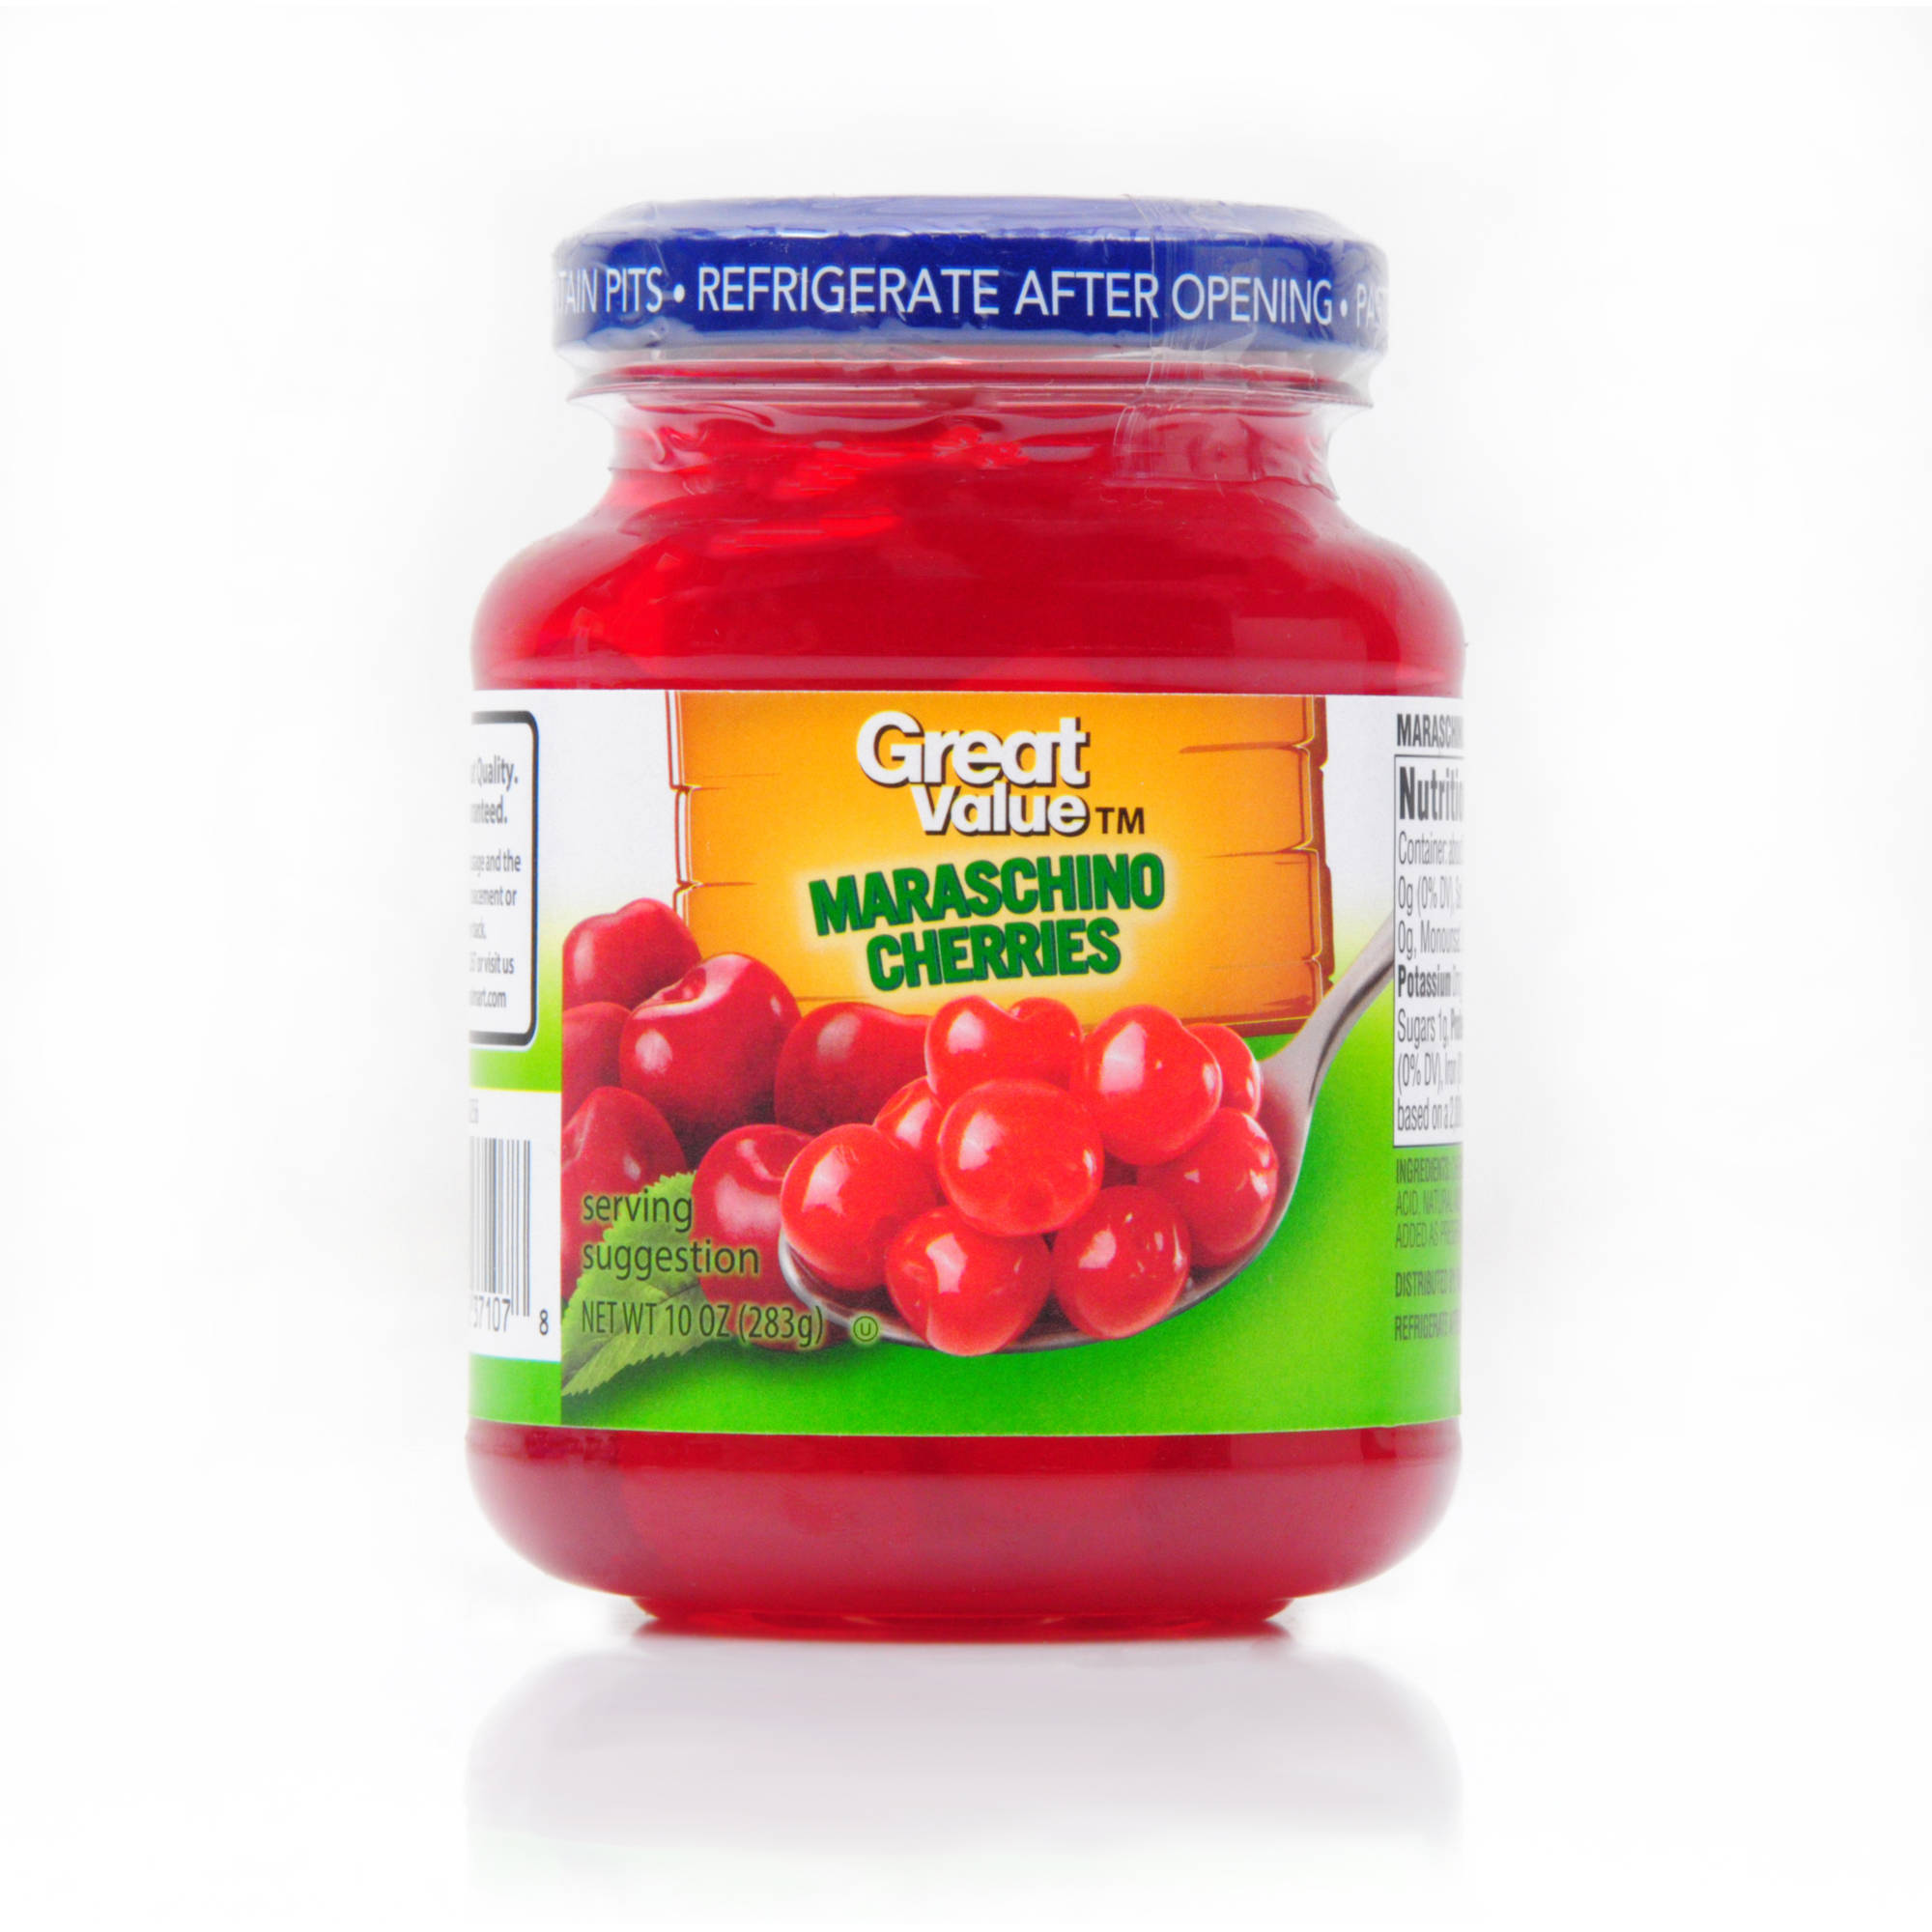 Great Value: Maraschino Cherries, 10 Oz by Wal-Mart Stores, Inc.